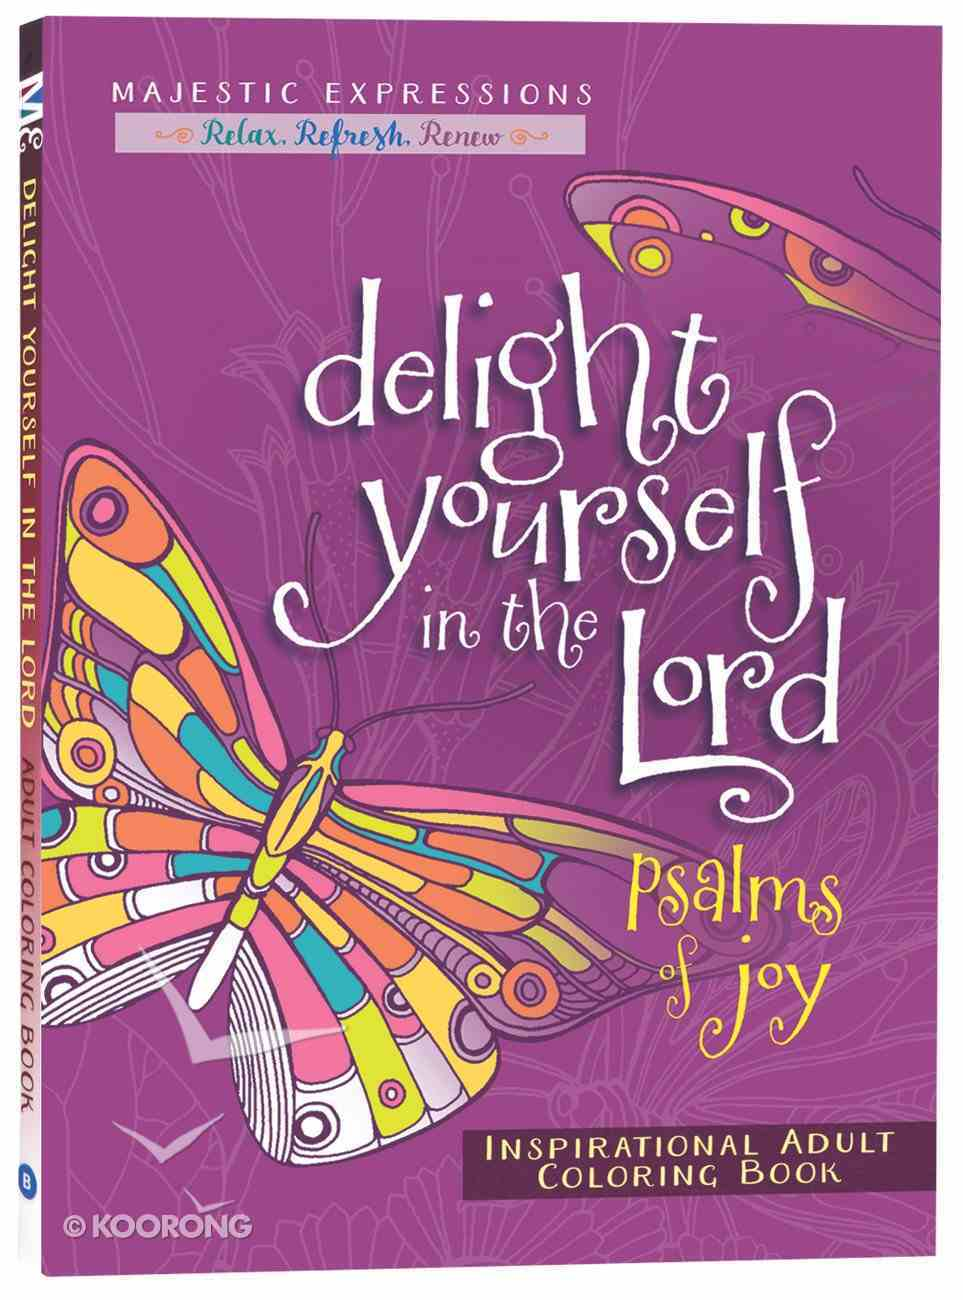 Delight Yourself in the Lord - Psalms of Joy (Majestic Expressions) (Adult Coloring Books Series) Paperback